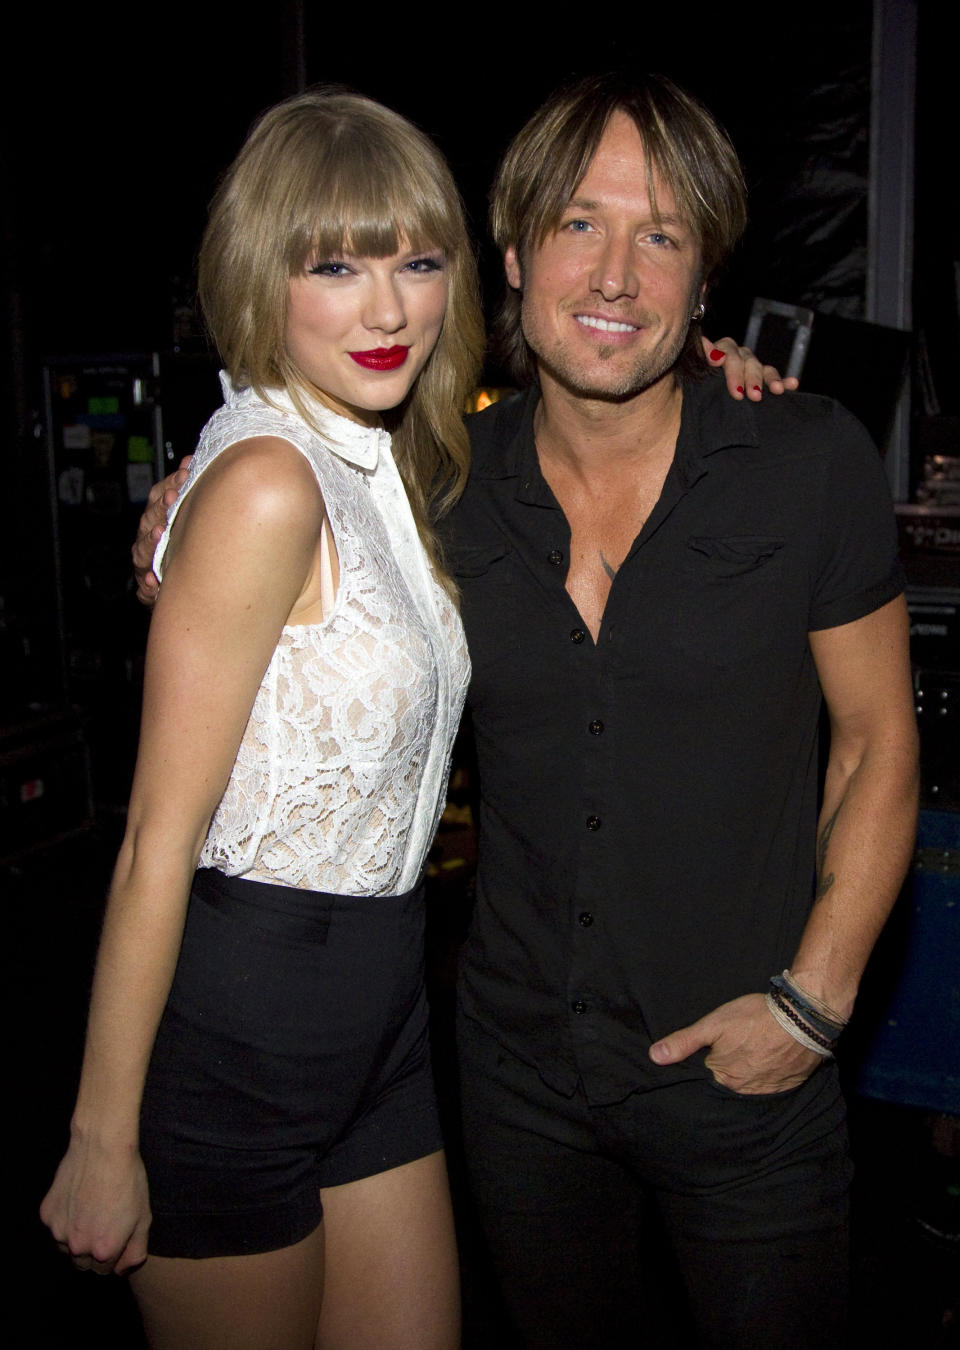 Taylor Swift teased a potential collaboration with Keith Urban. (Photo by Chris Hollo/Walt Disney Television via Getty Images)